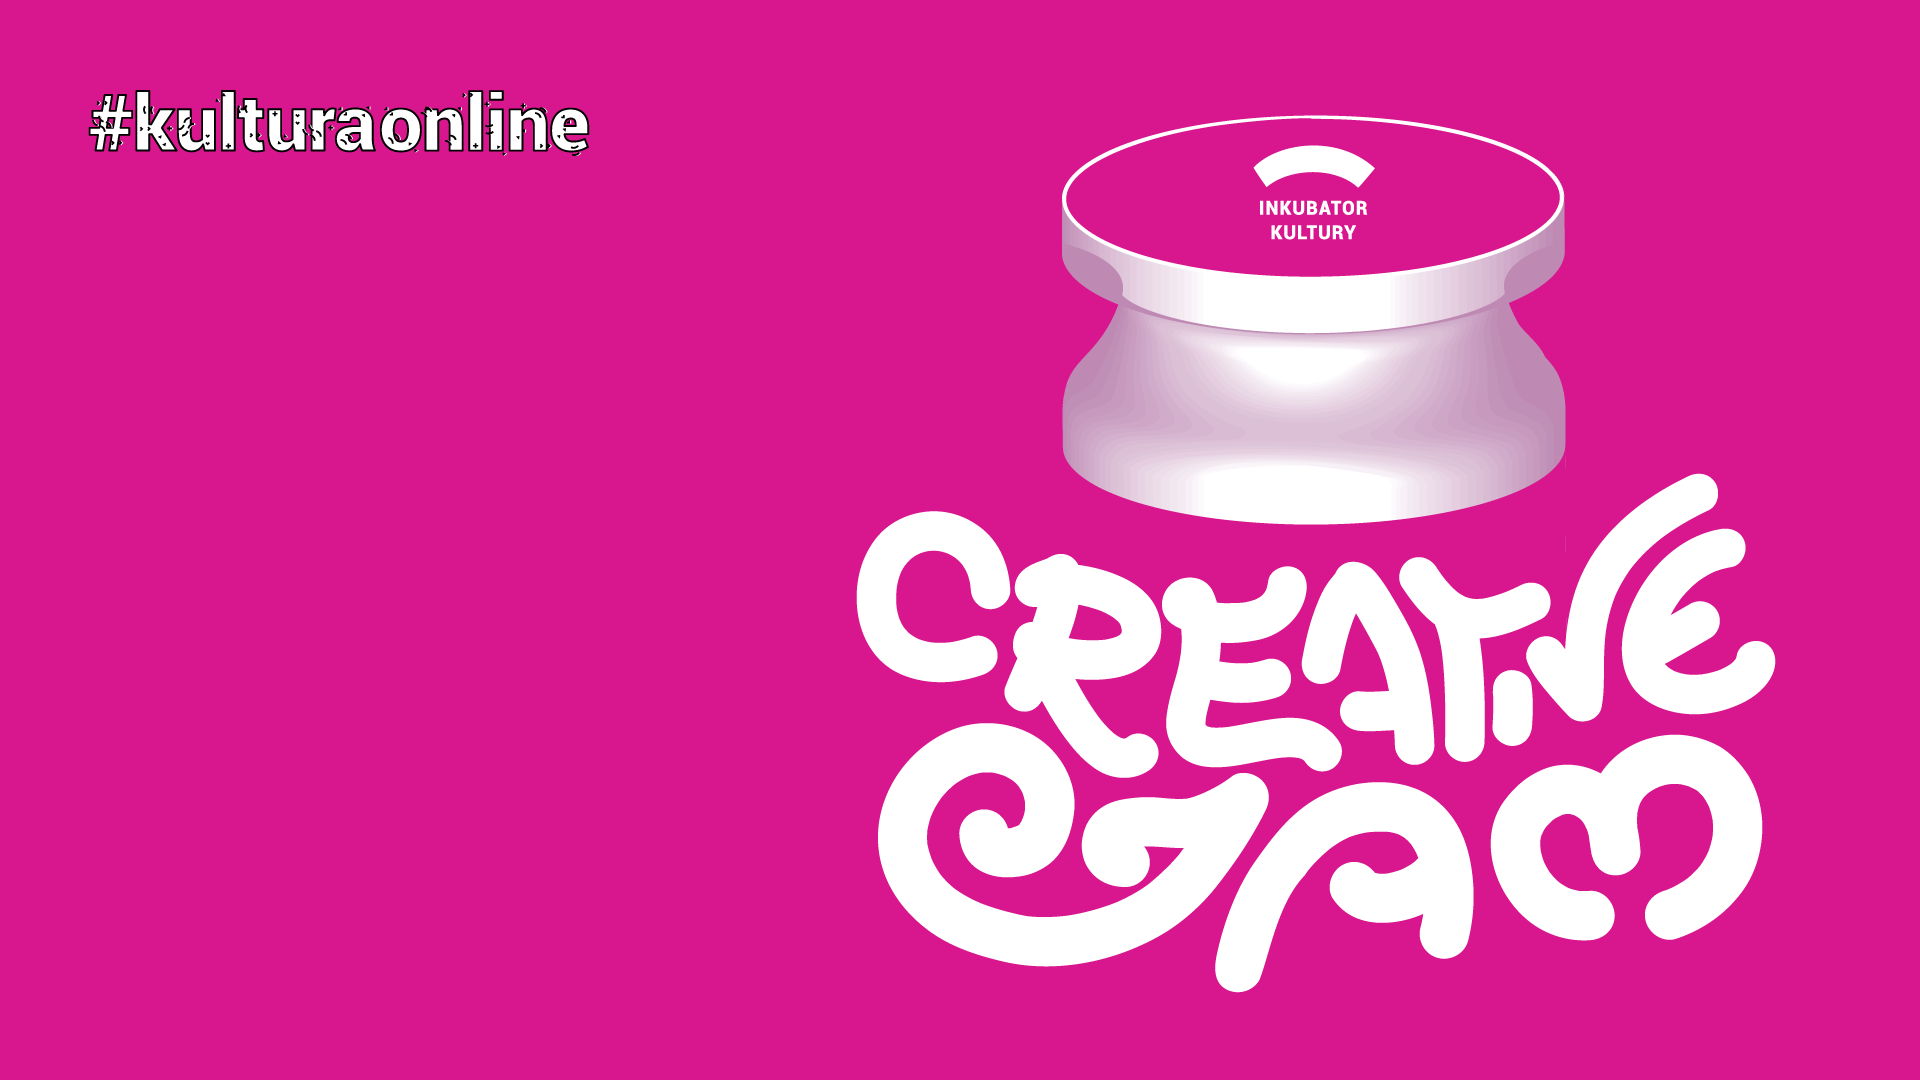 an image promoting the event creative jam. The illustration resembles a jar with the words Creative Jam below it